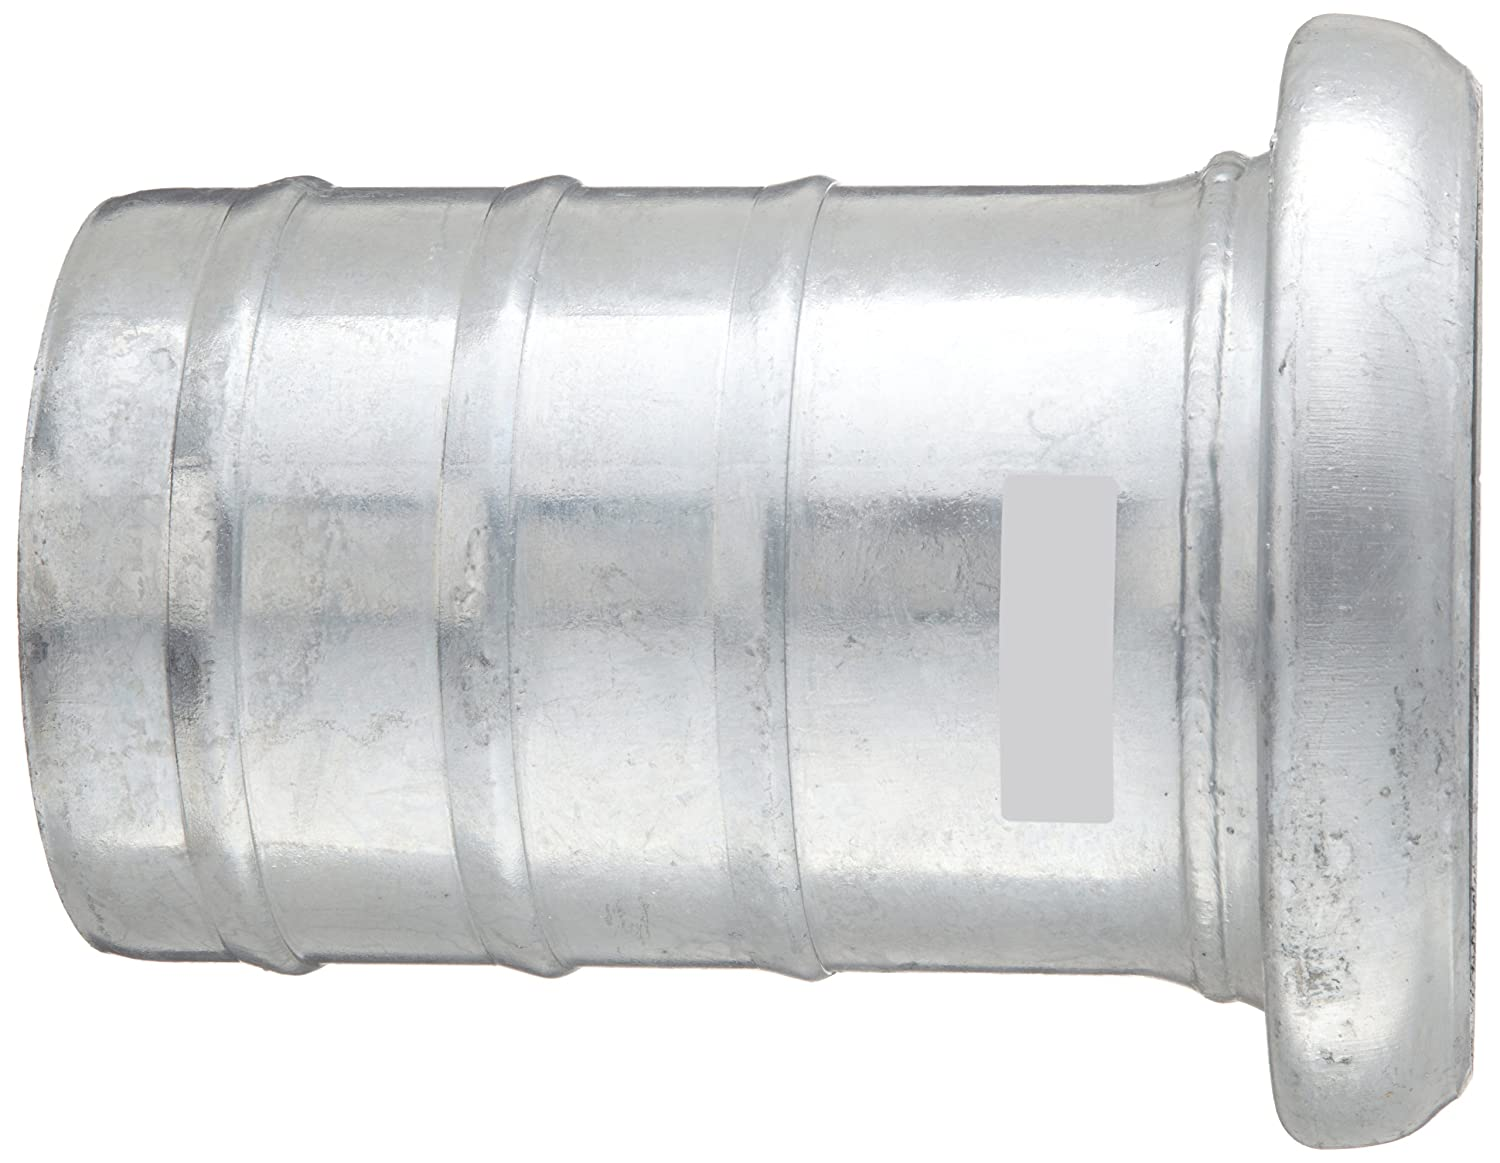 Dixon FC3106 Galvanized Steel Type B Shank//Water Quick-Connect Fitting 6 Female Coupling x 6 Hose ID Barbed Coupler with Gasket